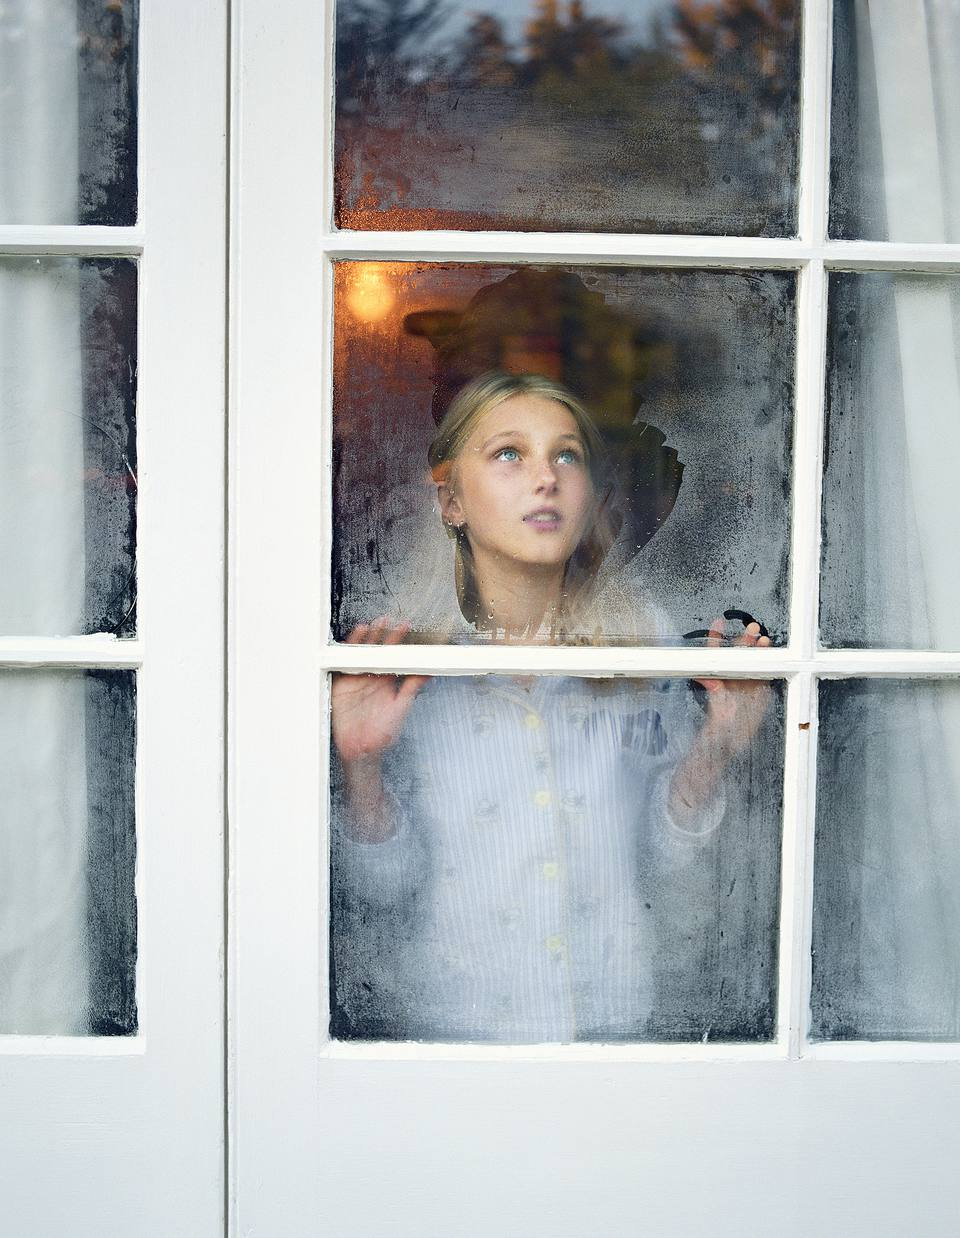 Girl looking out foggy window